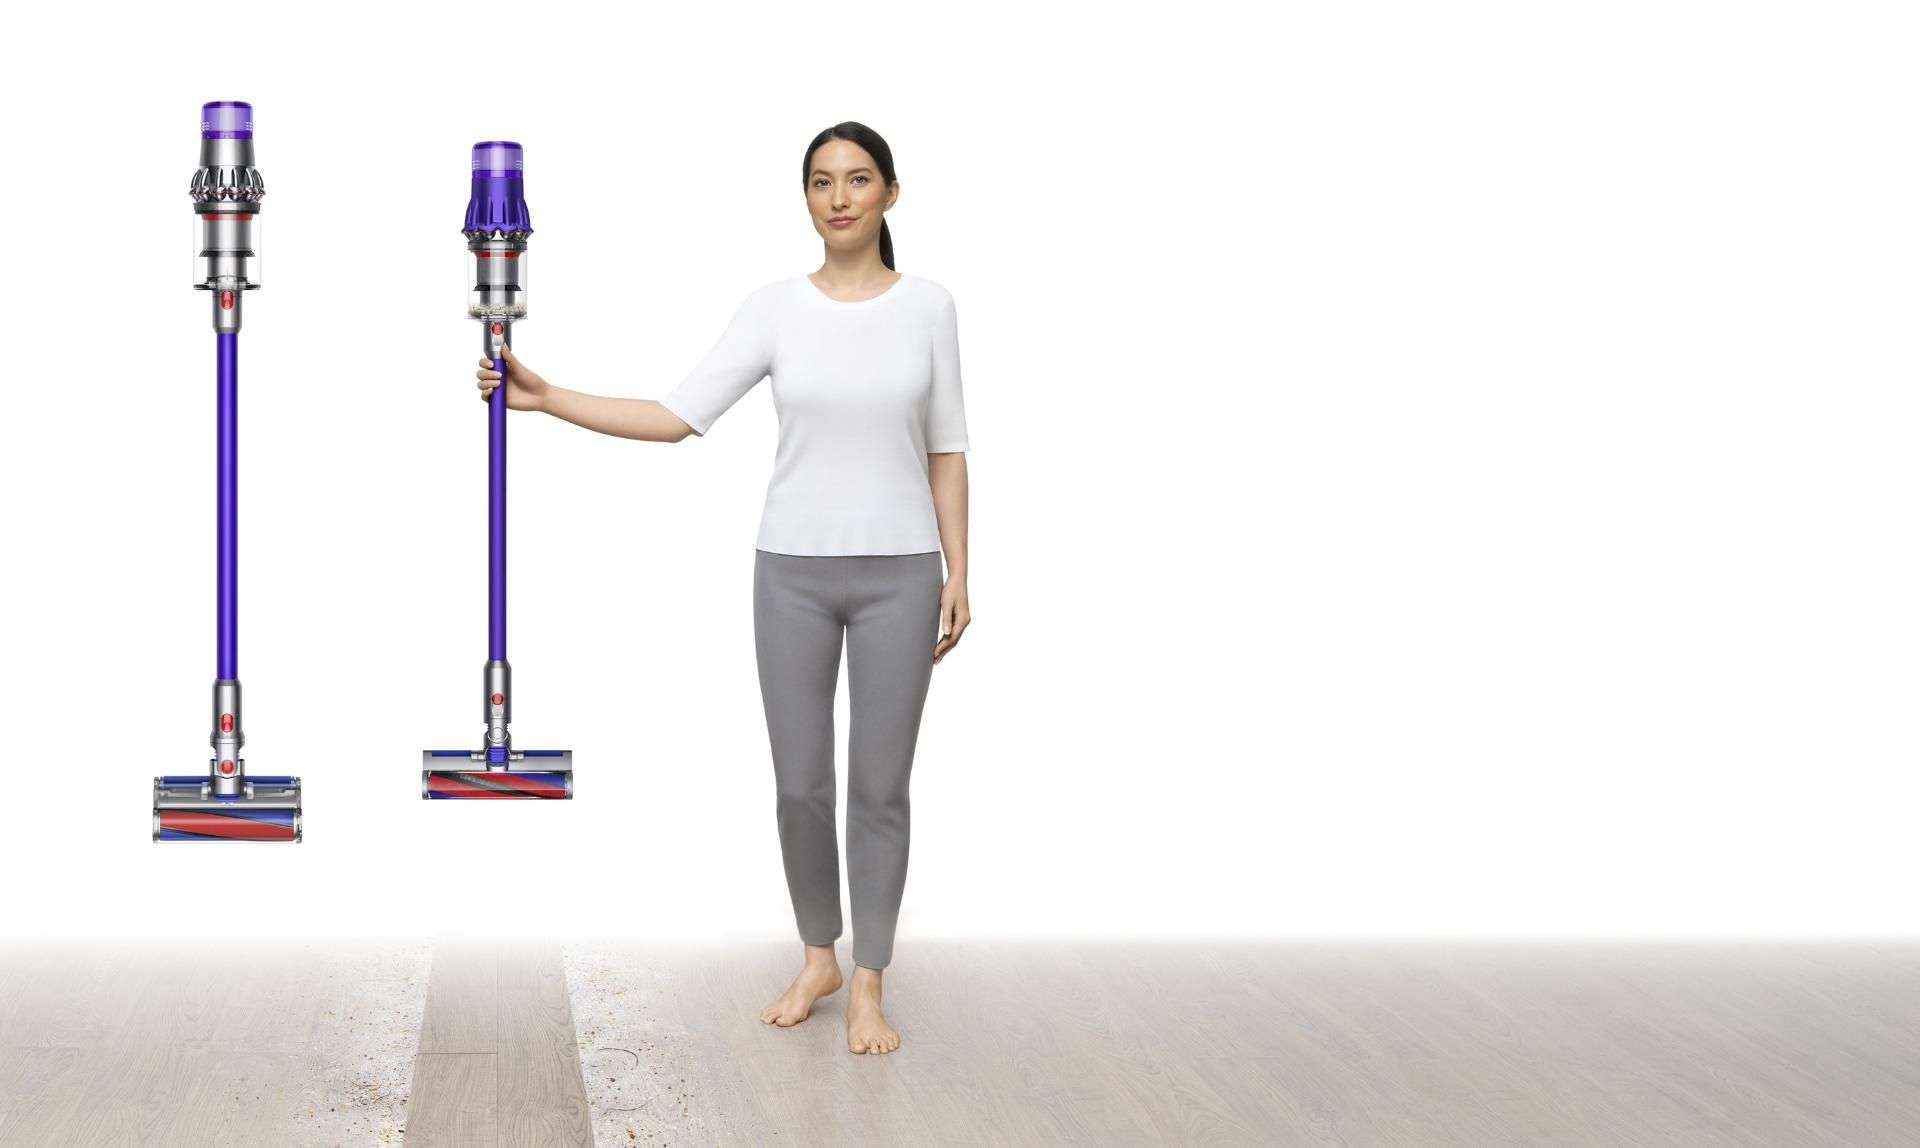 Image of a woman holding a Dyson Digital Slim™ vacuum alongside a V11™.